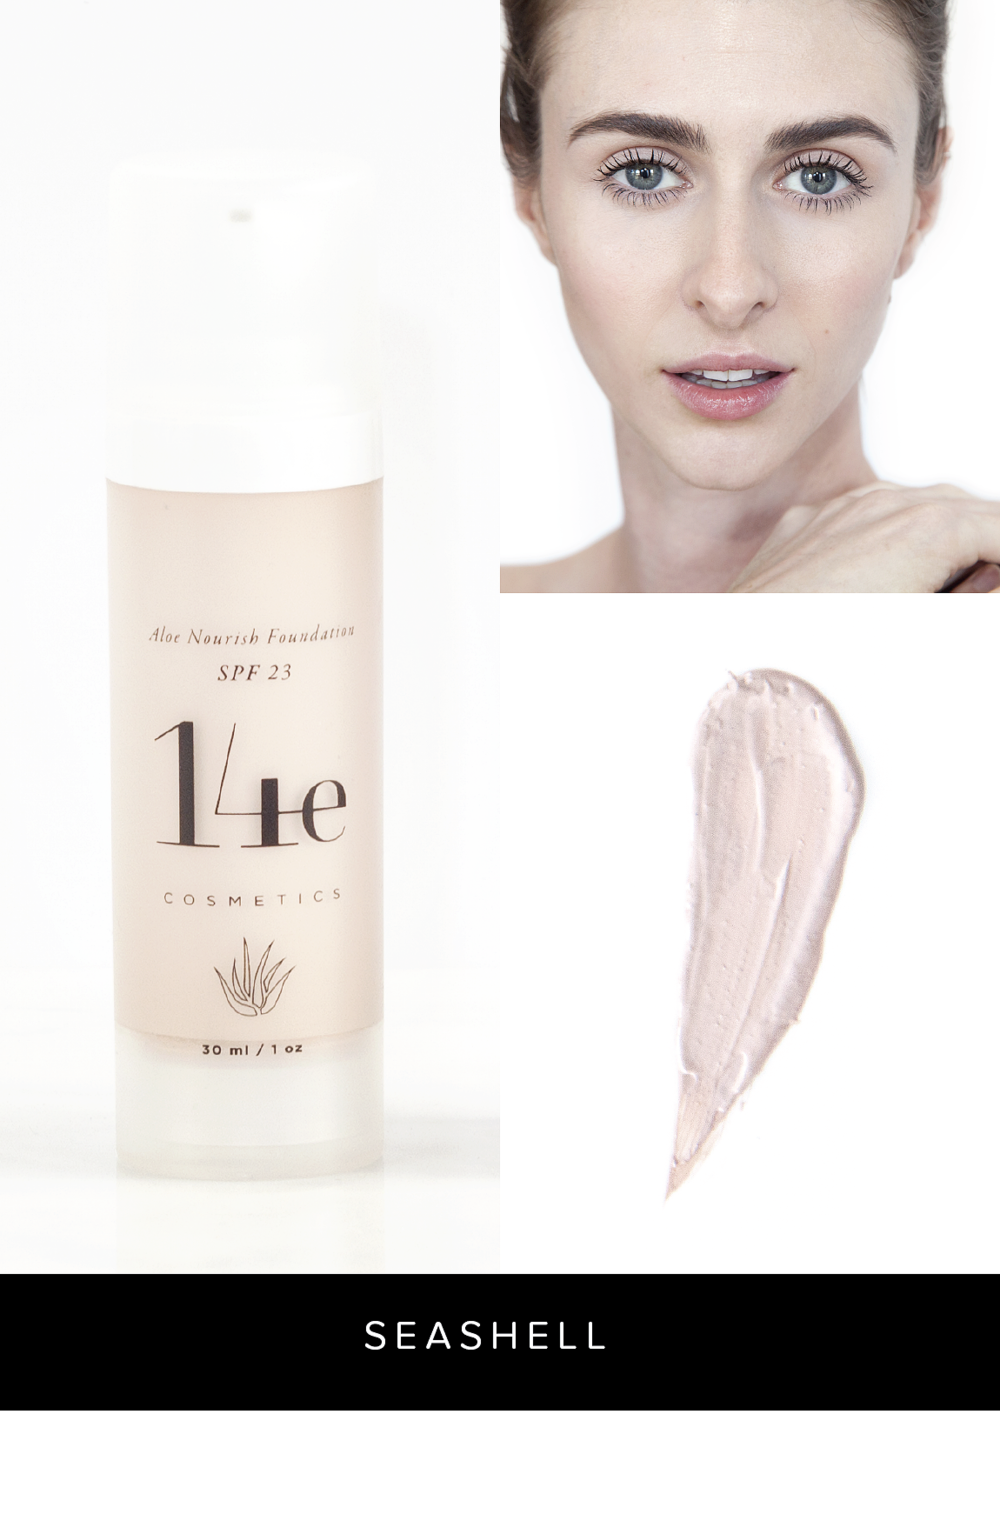 Aloe Nourish Foundation